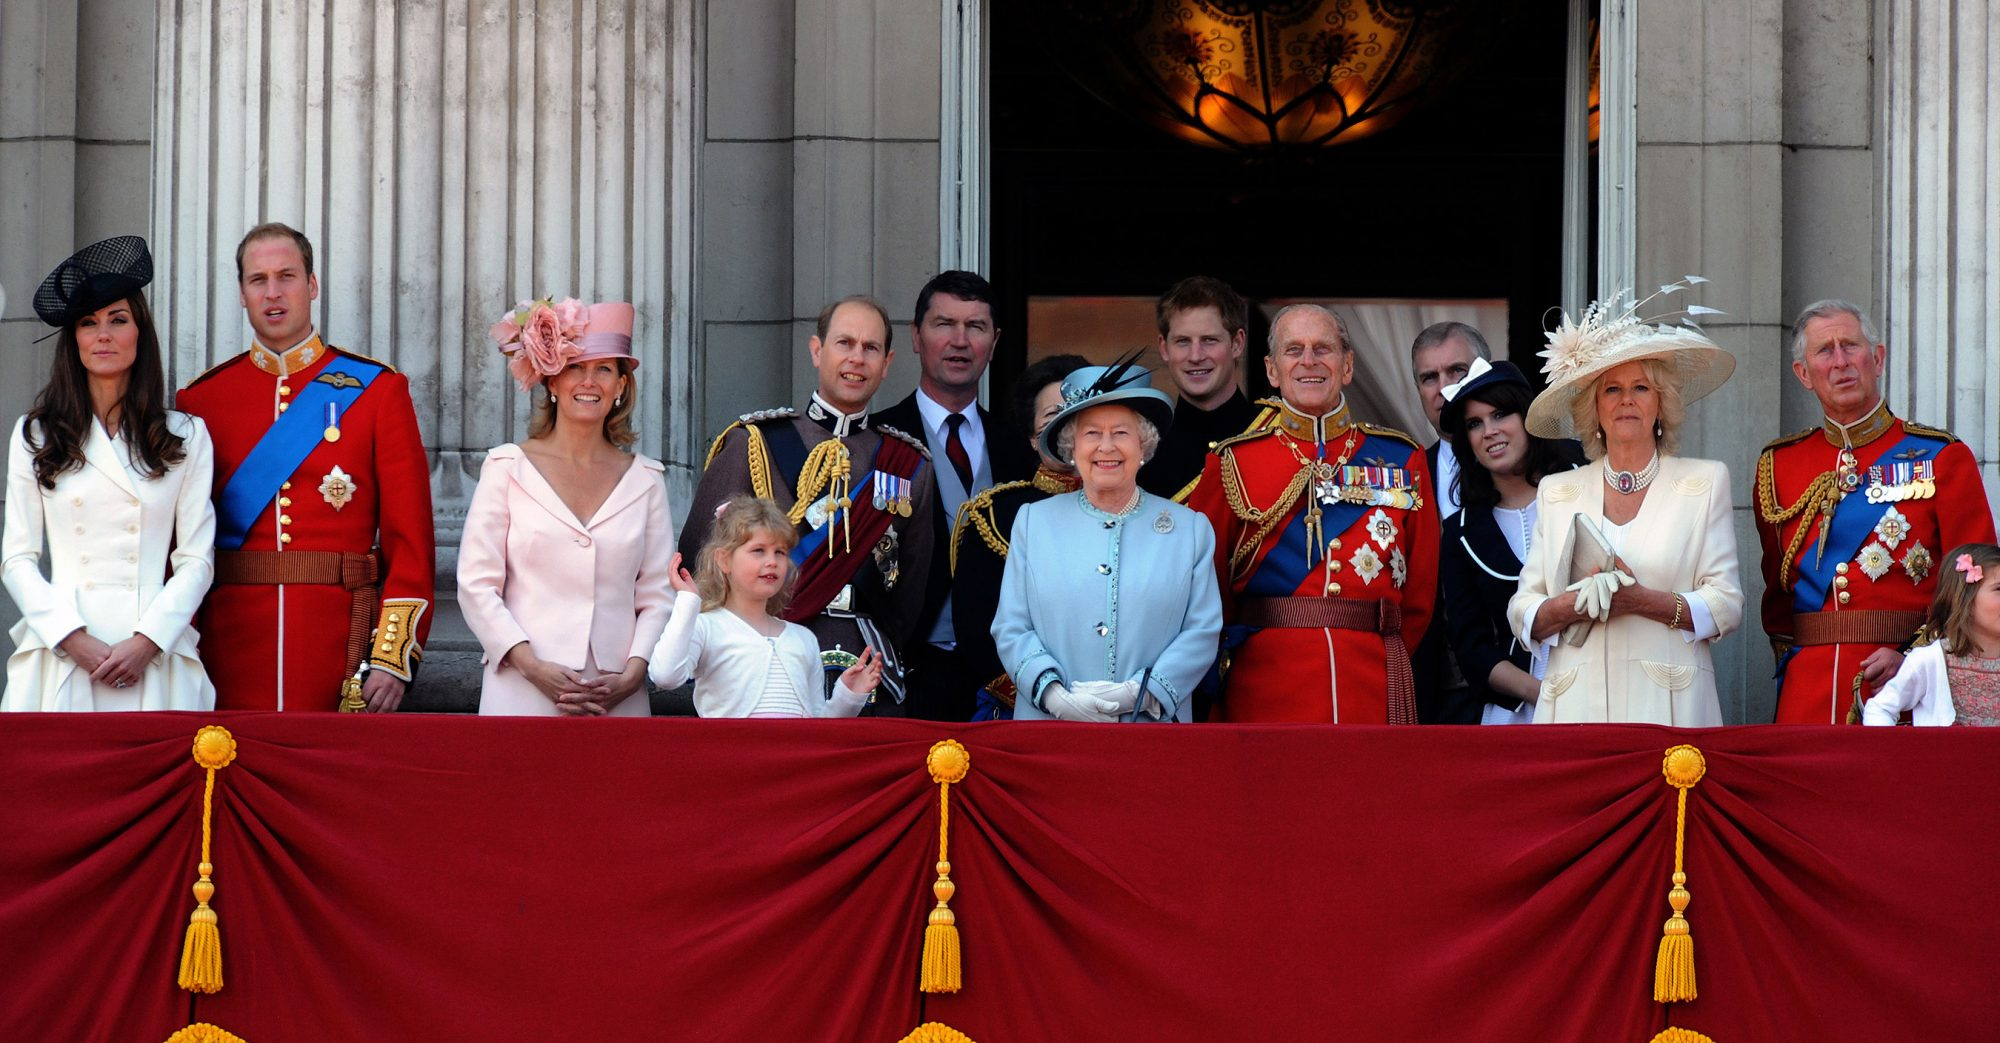 kate-trooping-the-colours-1